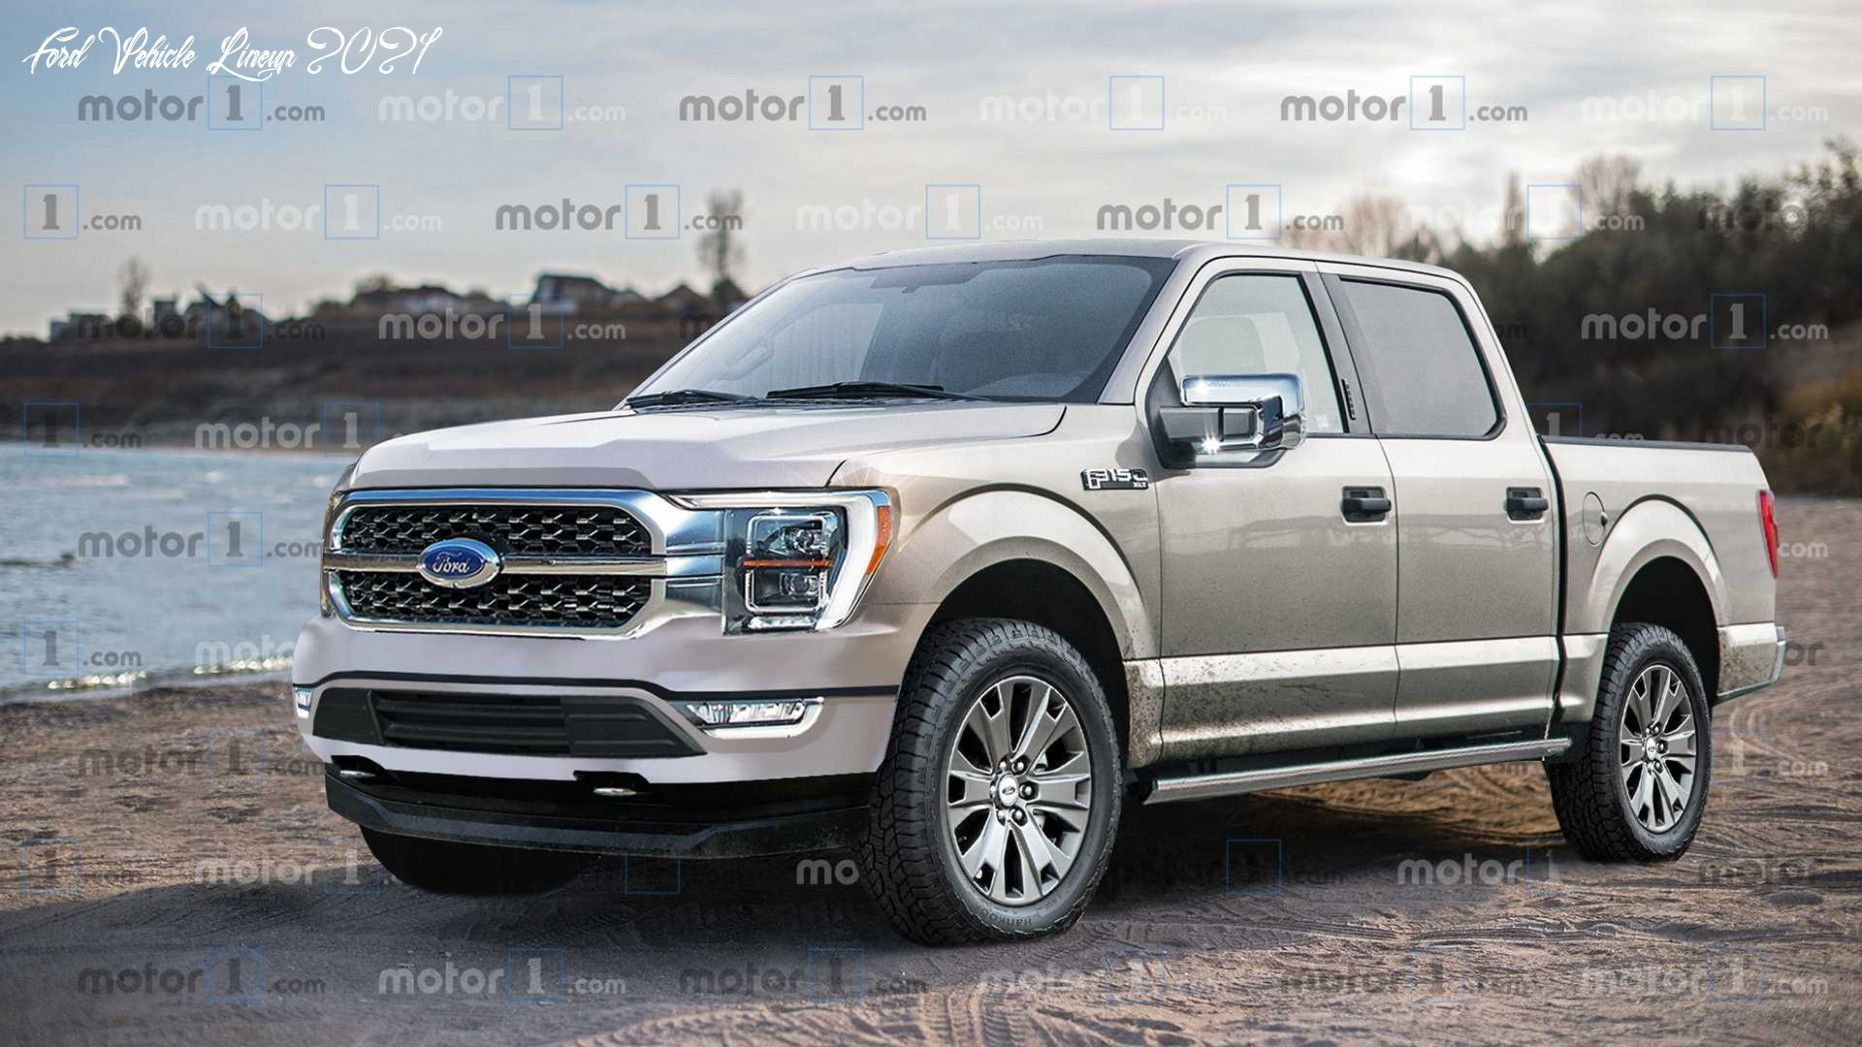 Ford Vehicle Lineup 2021 Reviews In 2020 Ford F150 Ford Trucks Vehicles